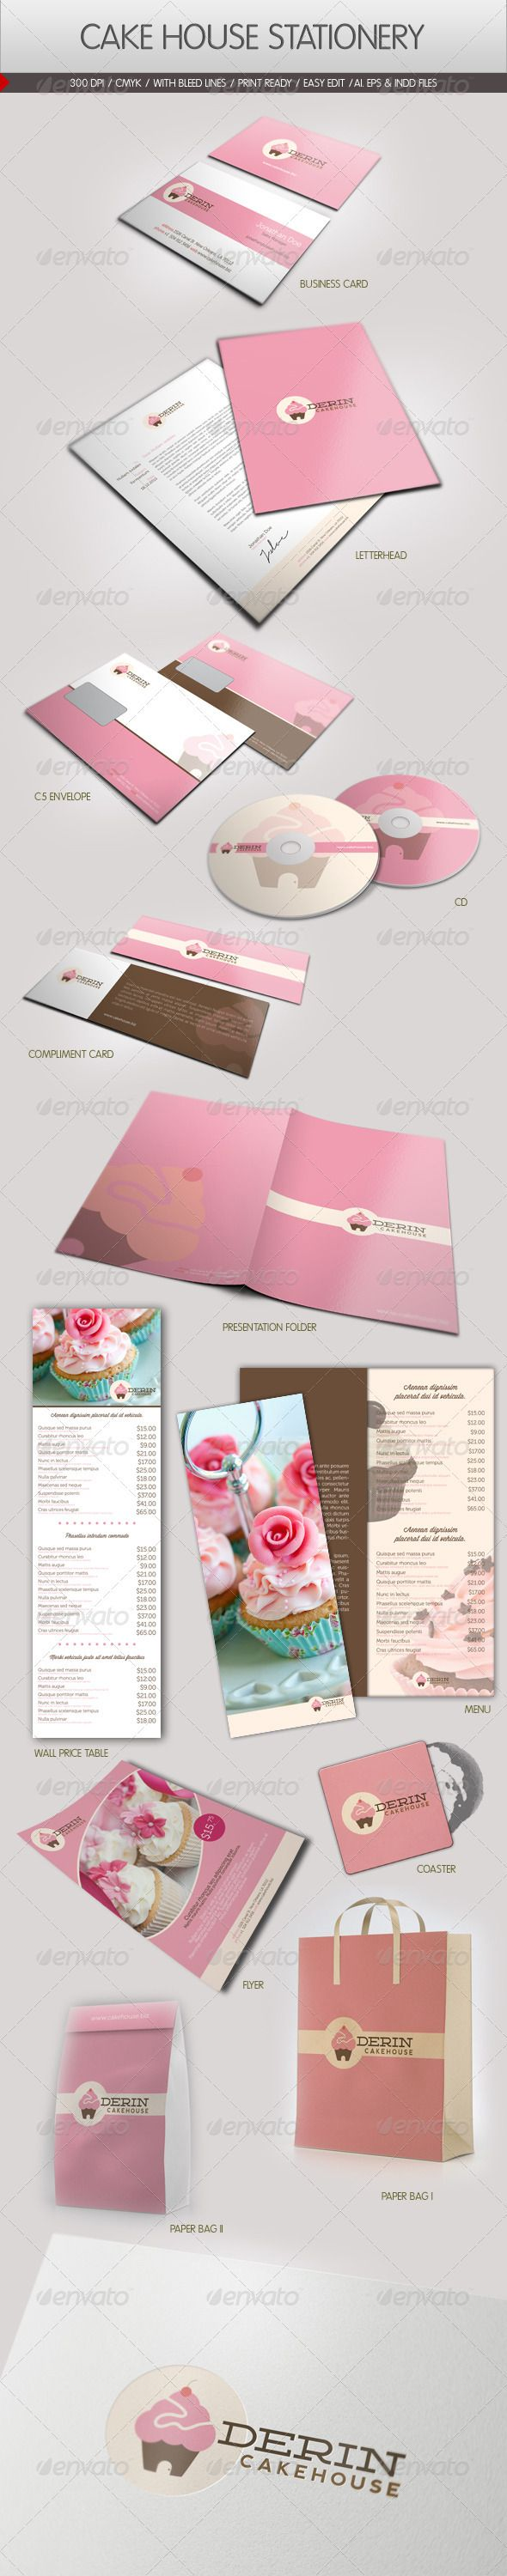 best supplies images on pinterest paper mill products and boxes